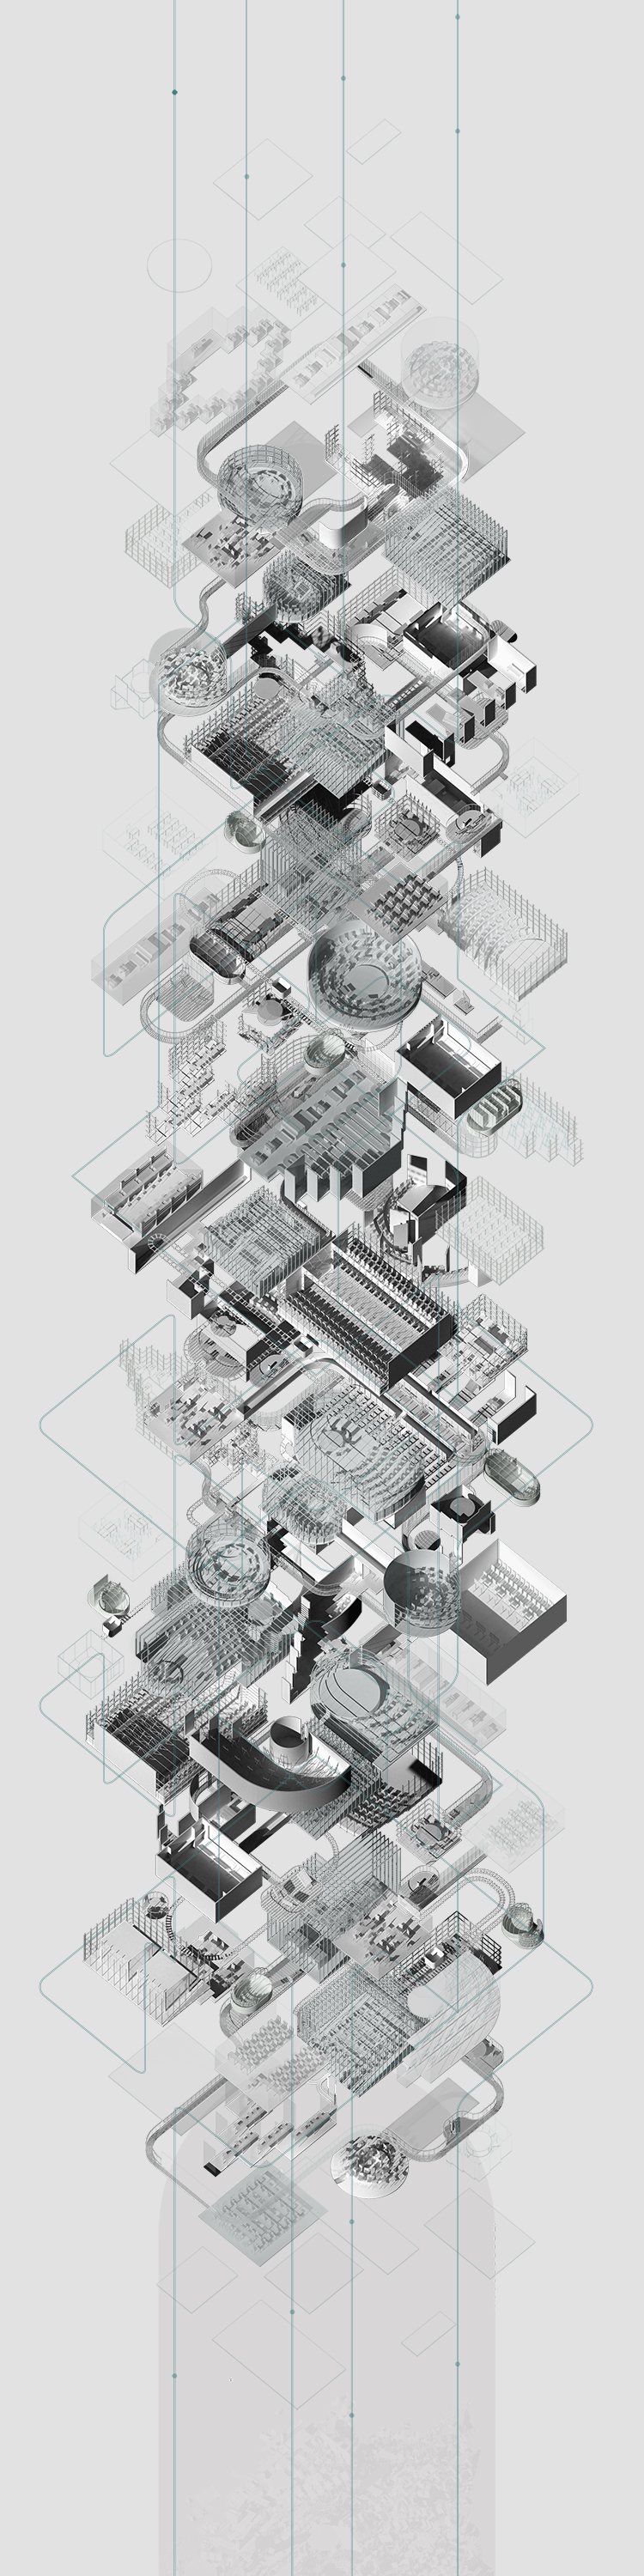 Aa School Of Architecture 2015 Zsuzsa Peter